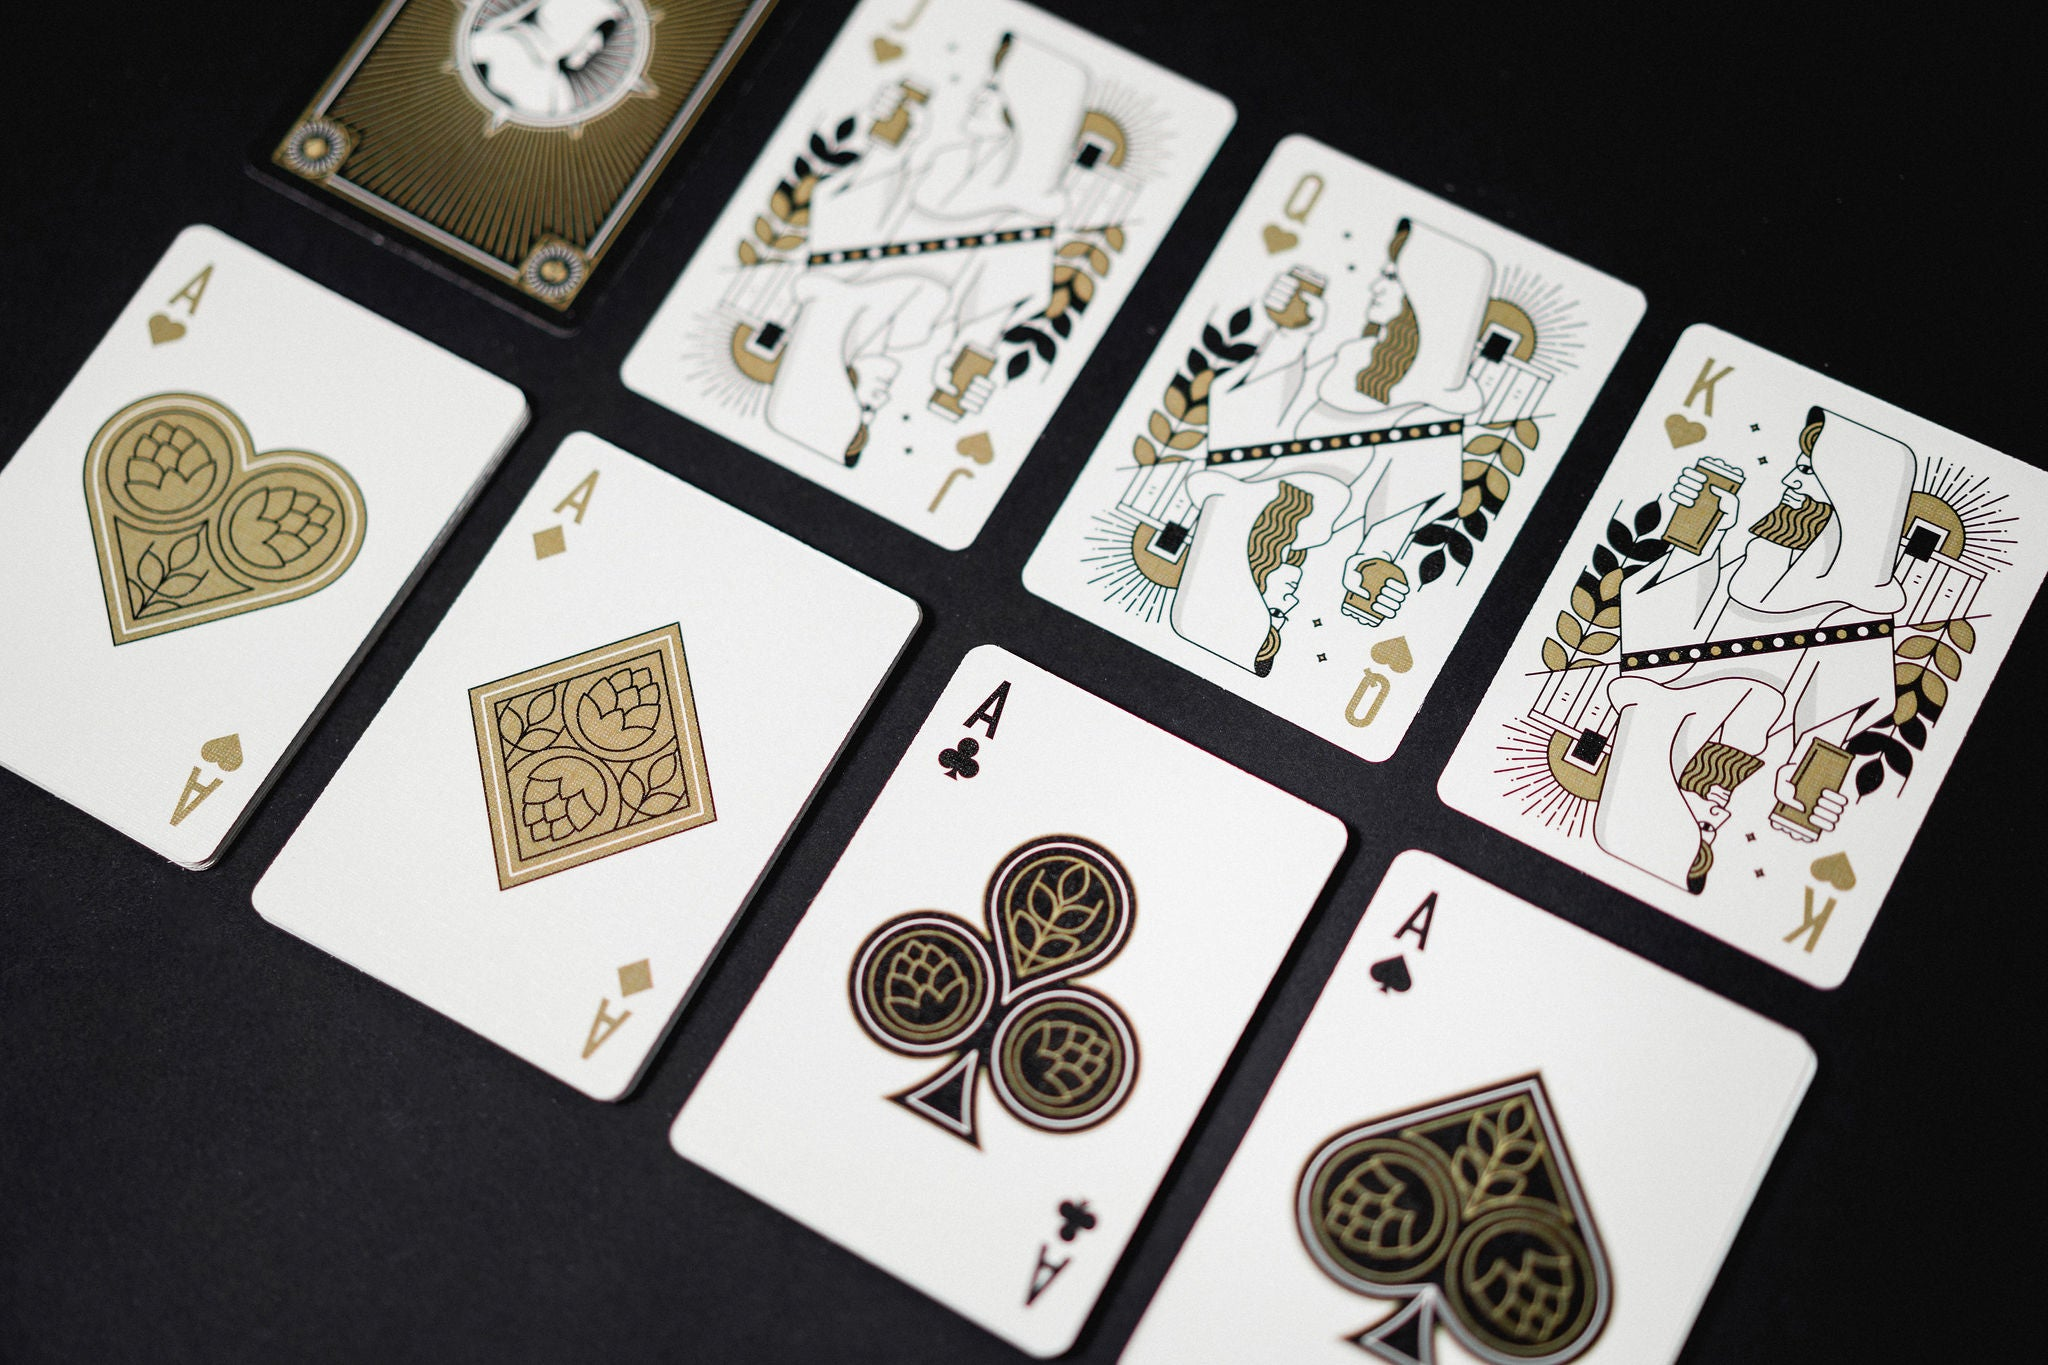 NORTHERN MONK PLAYING CARDS